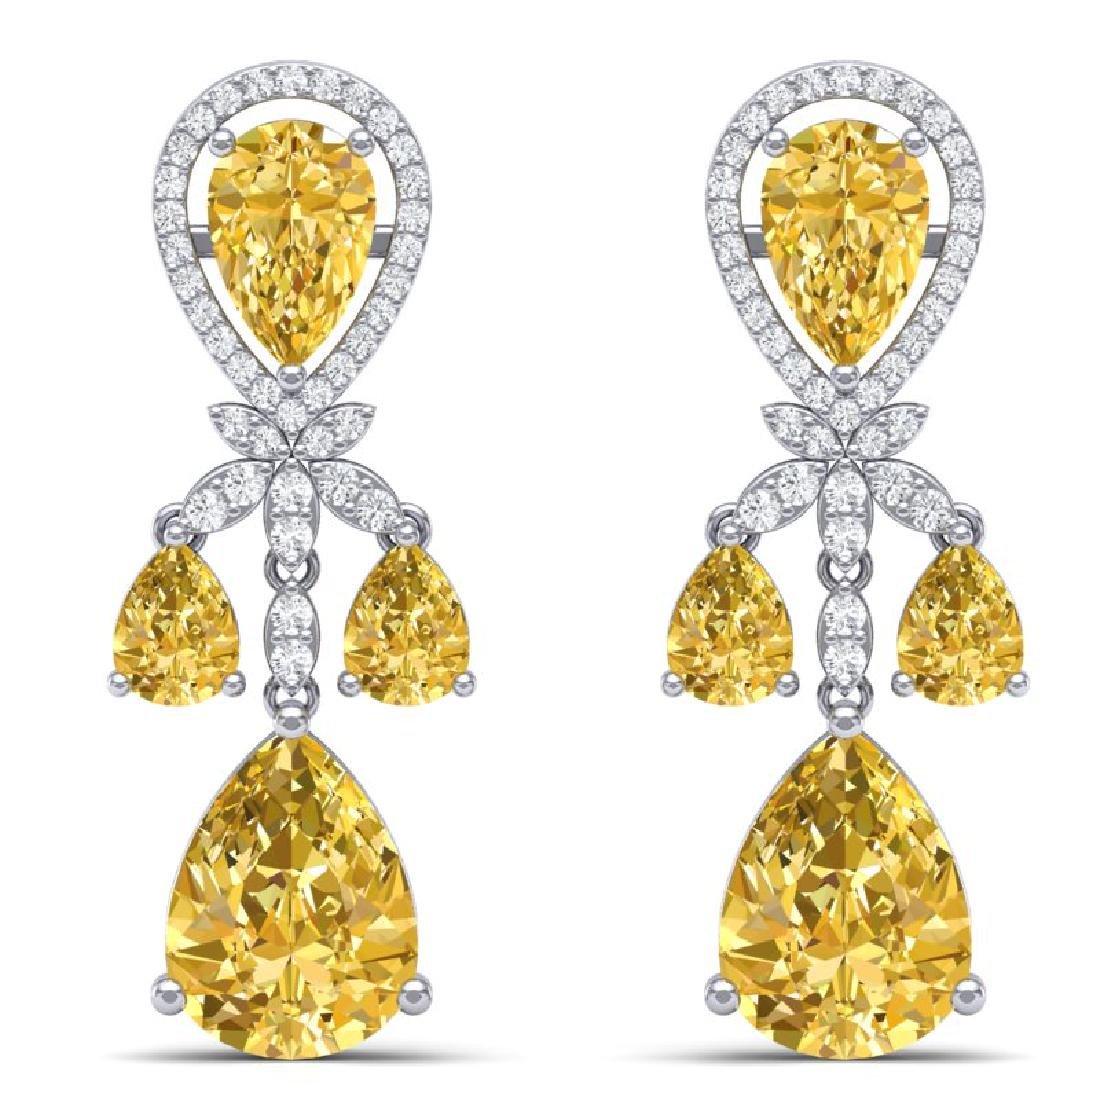 35.67 CTW Royalty Canary Citrine & VS Diamond Earrings